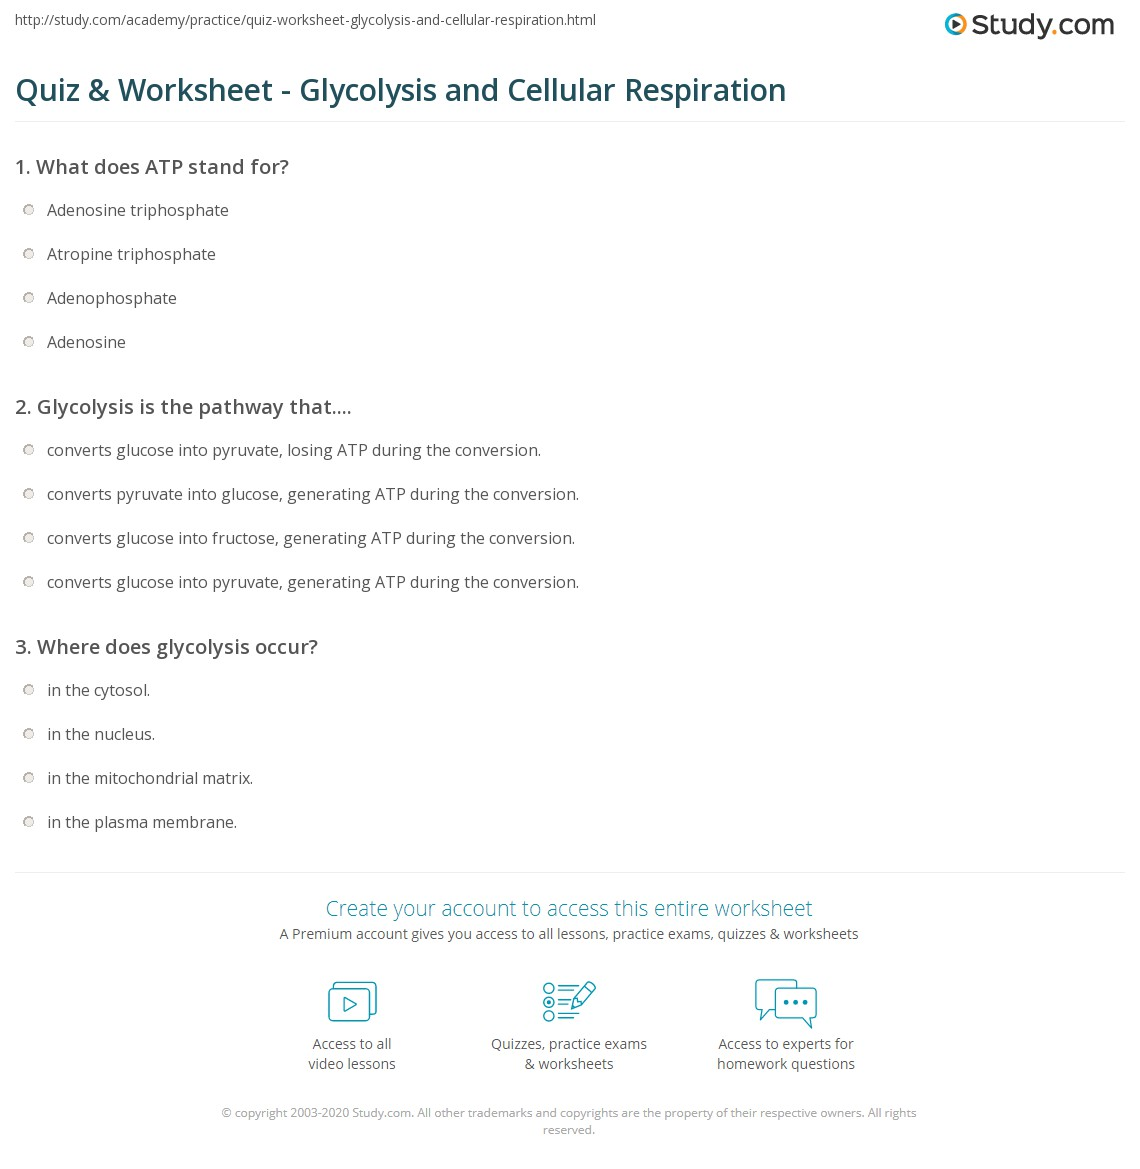 Quiz Worksheet Glycolysis And Cellular Respiration